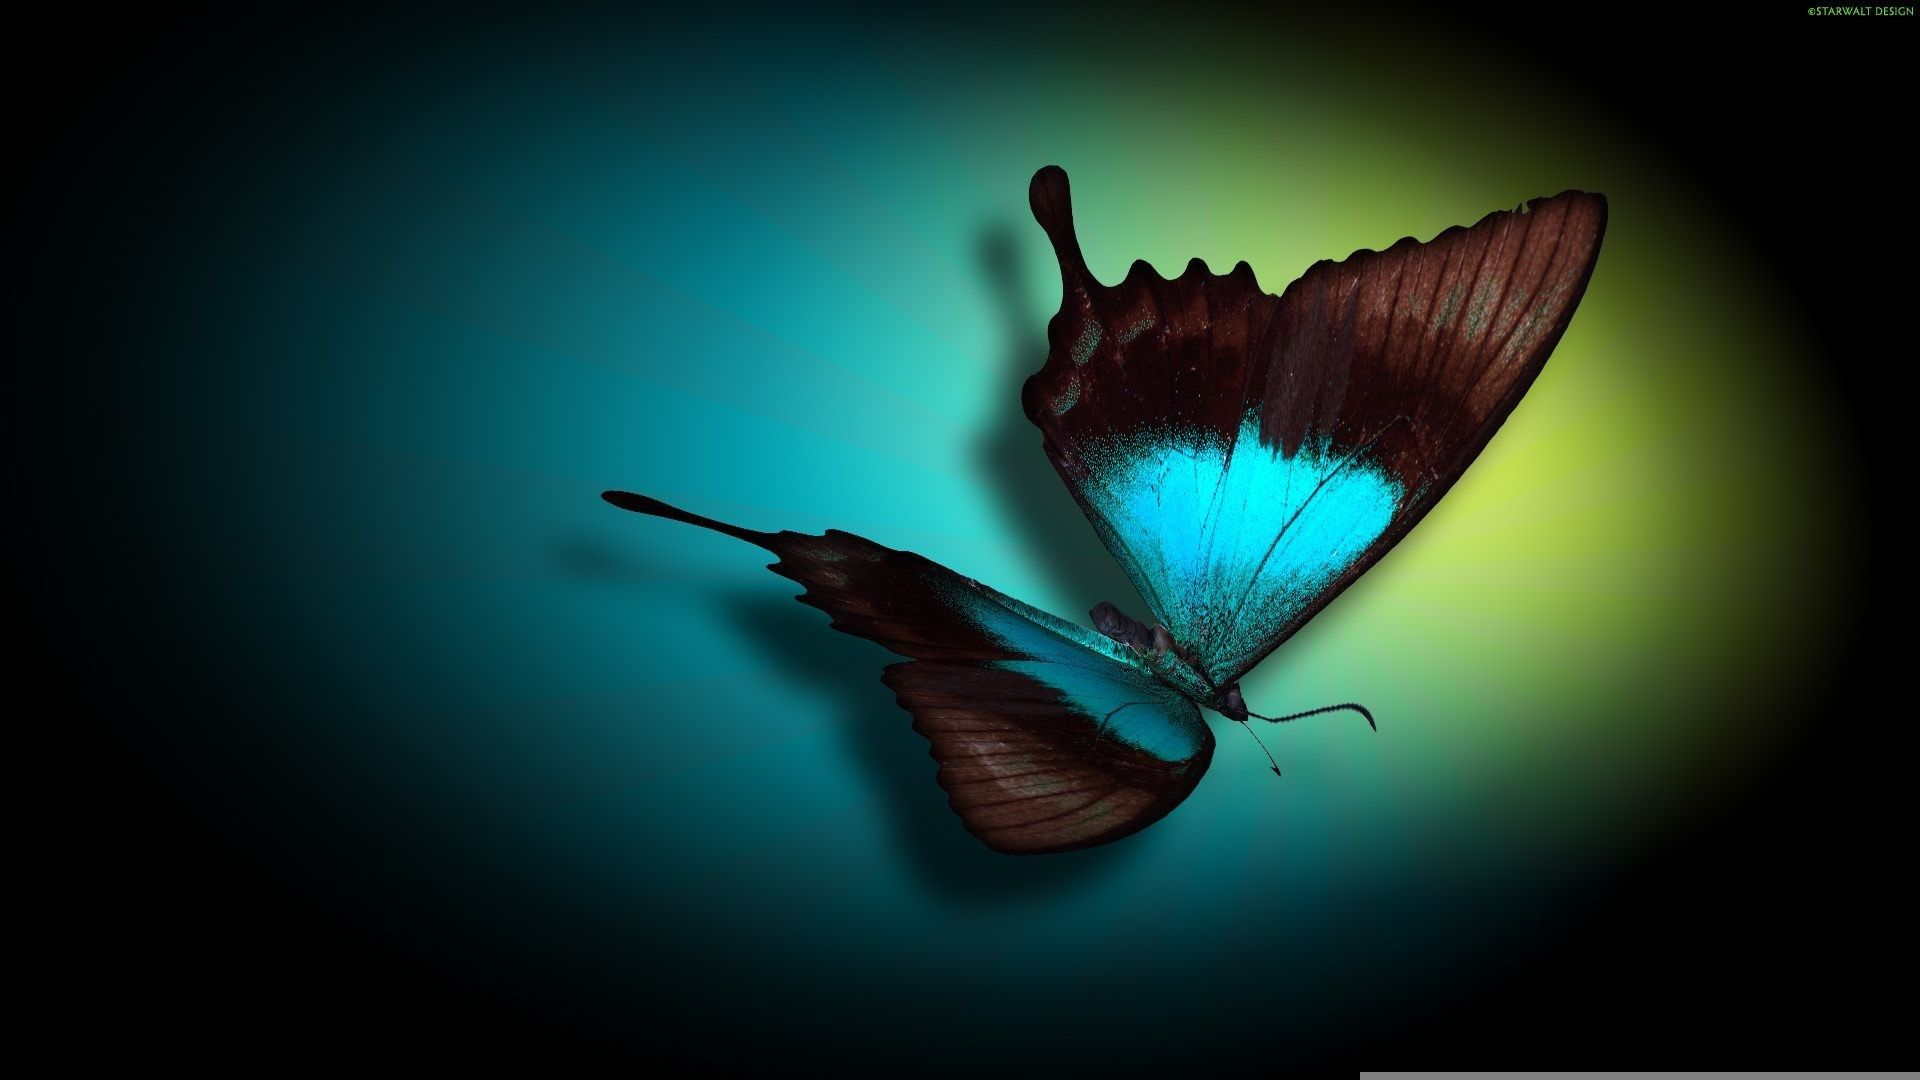 1920x1080 Morpho Butterfly Hd Wallpaper Free Download For Desktop Butterfly Wallpaper Computer Wallpaper Cool Backgrounds